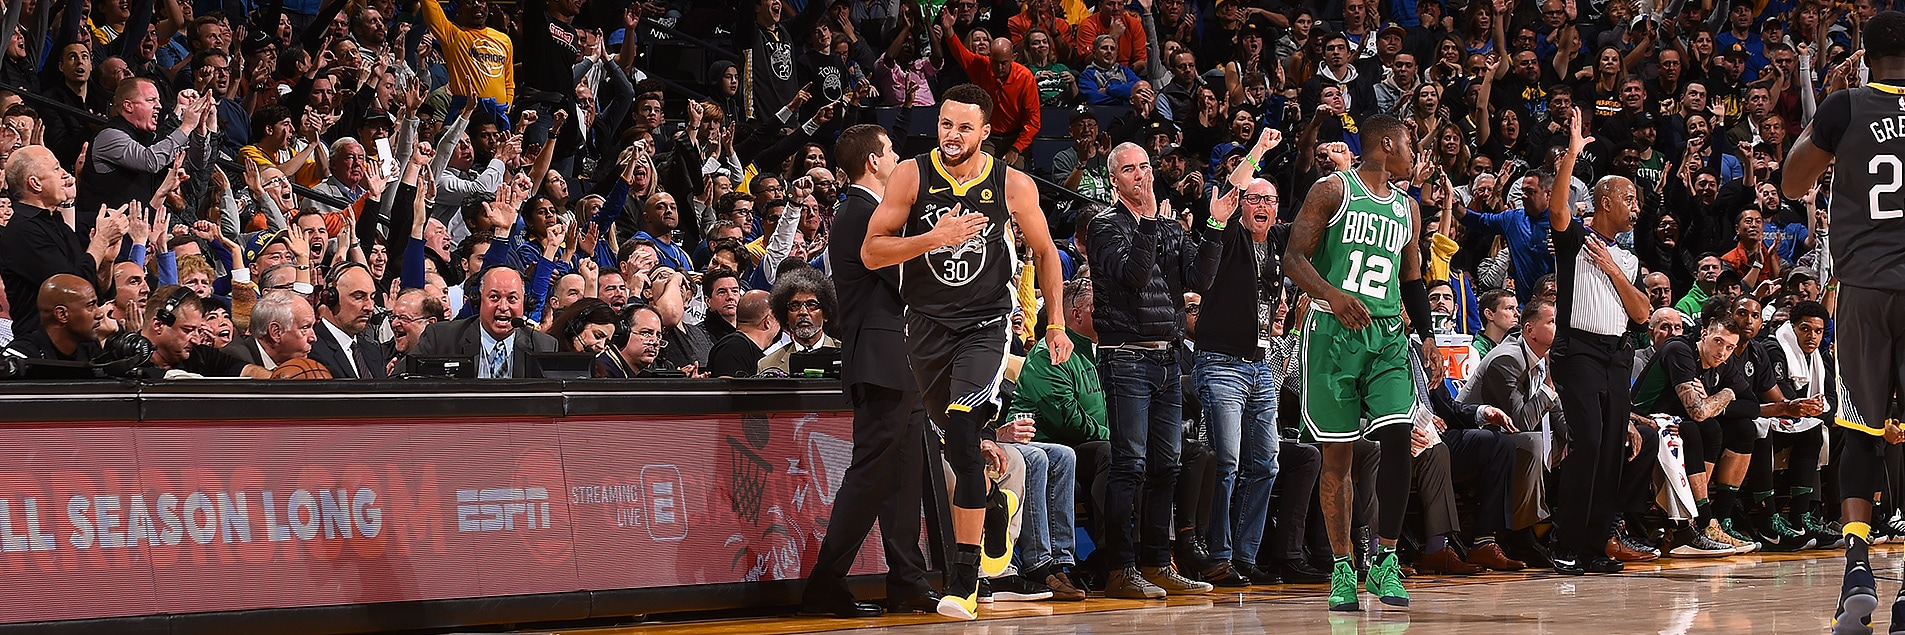 Clutch Curry Delivers as Dubs Beat Celtics | Golden State Warriors